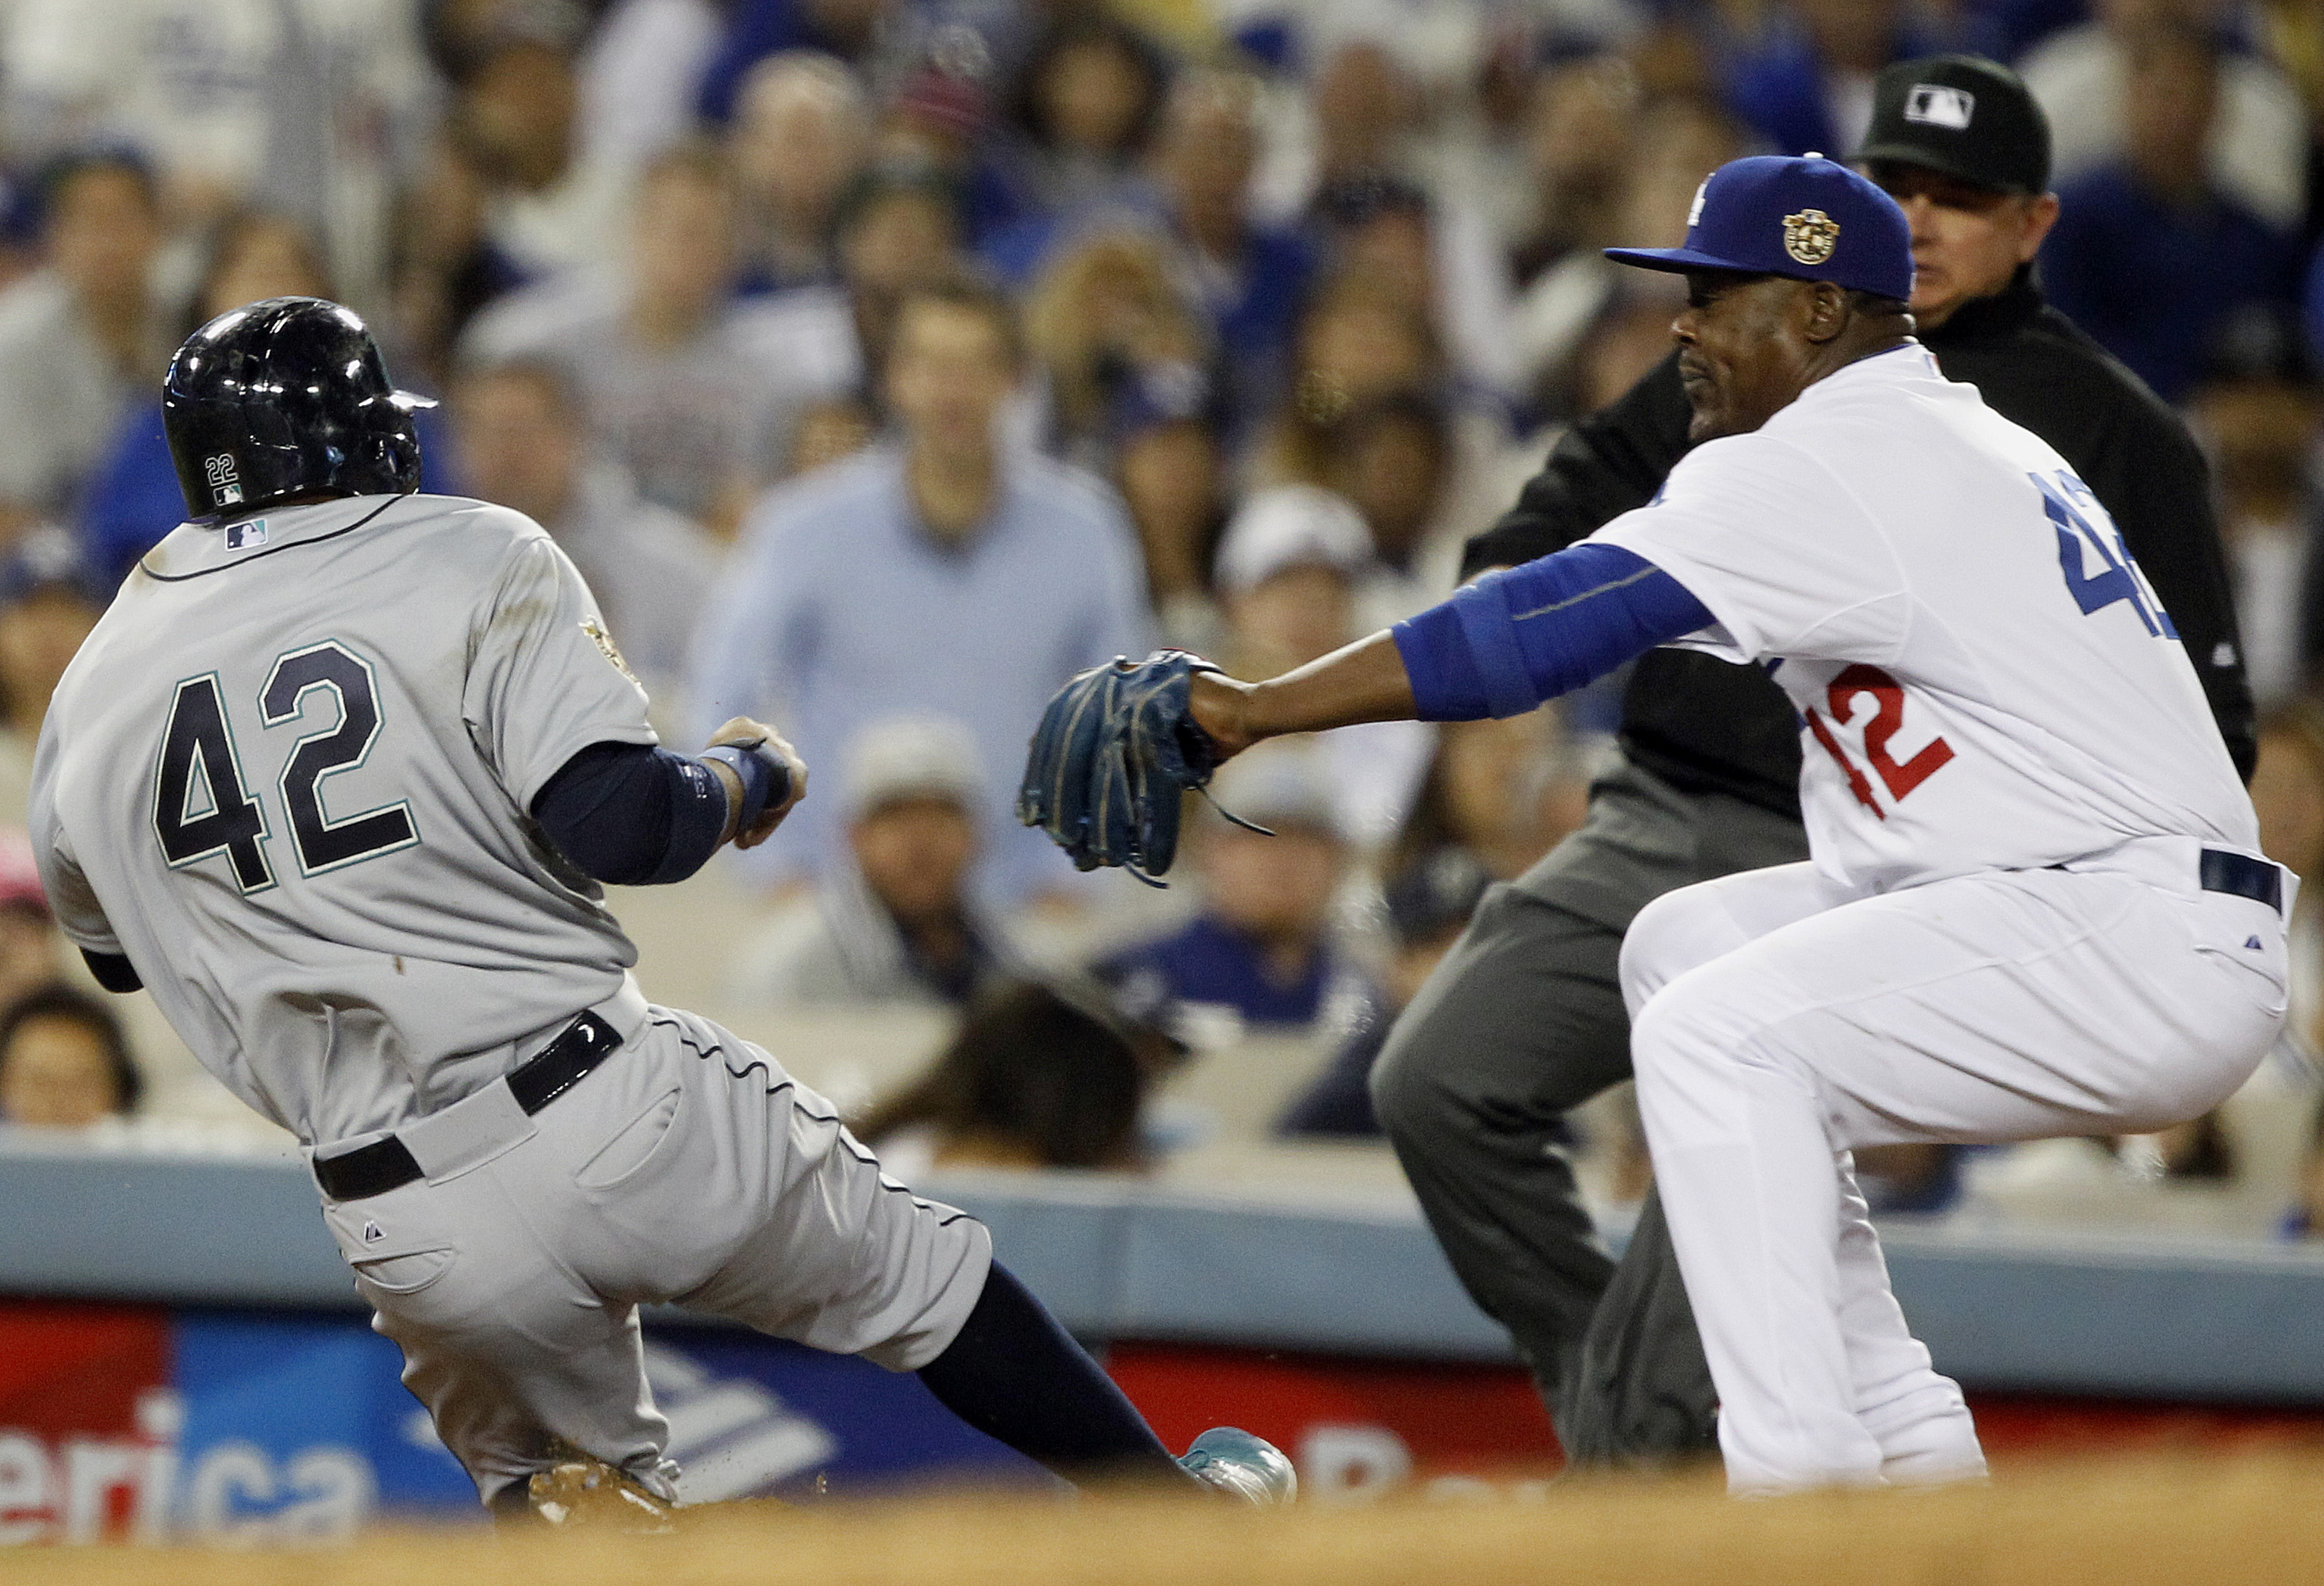 Los Angeles Dodgers third baseman Juan Uribe, right, tags out Seattle Mariners' Robinson Cano at third base in a rundown, during the sixth inning of a baseball game in Los Angeles, Wednesday, April 15, 2015. (AP Photo/Alex Gallardo)